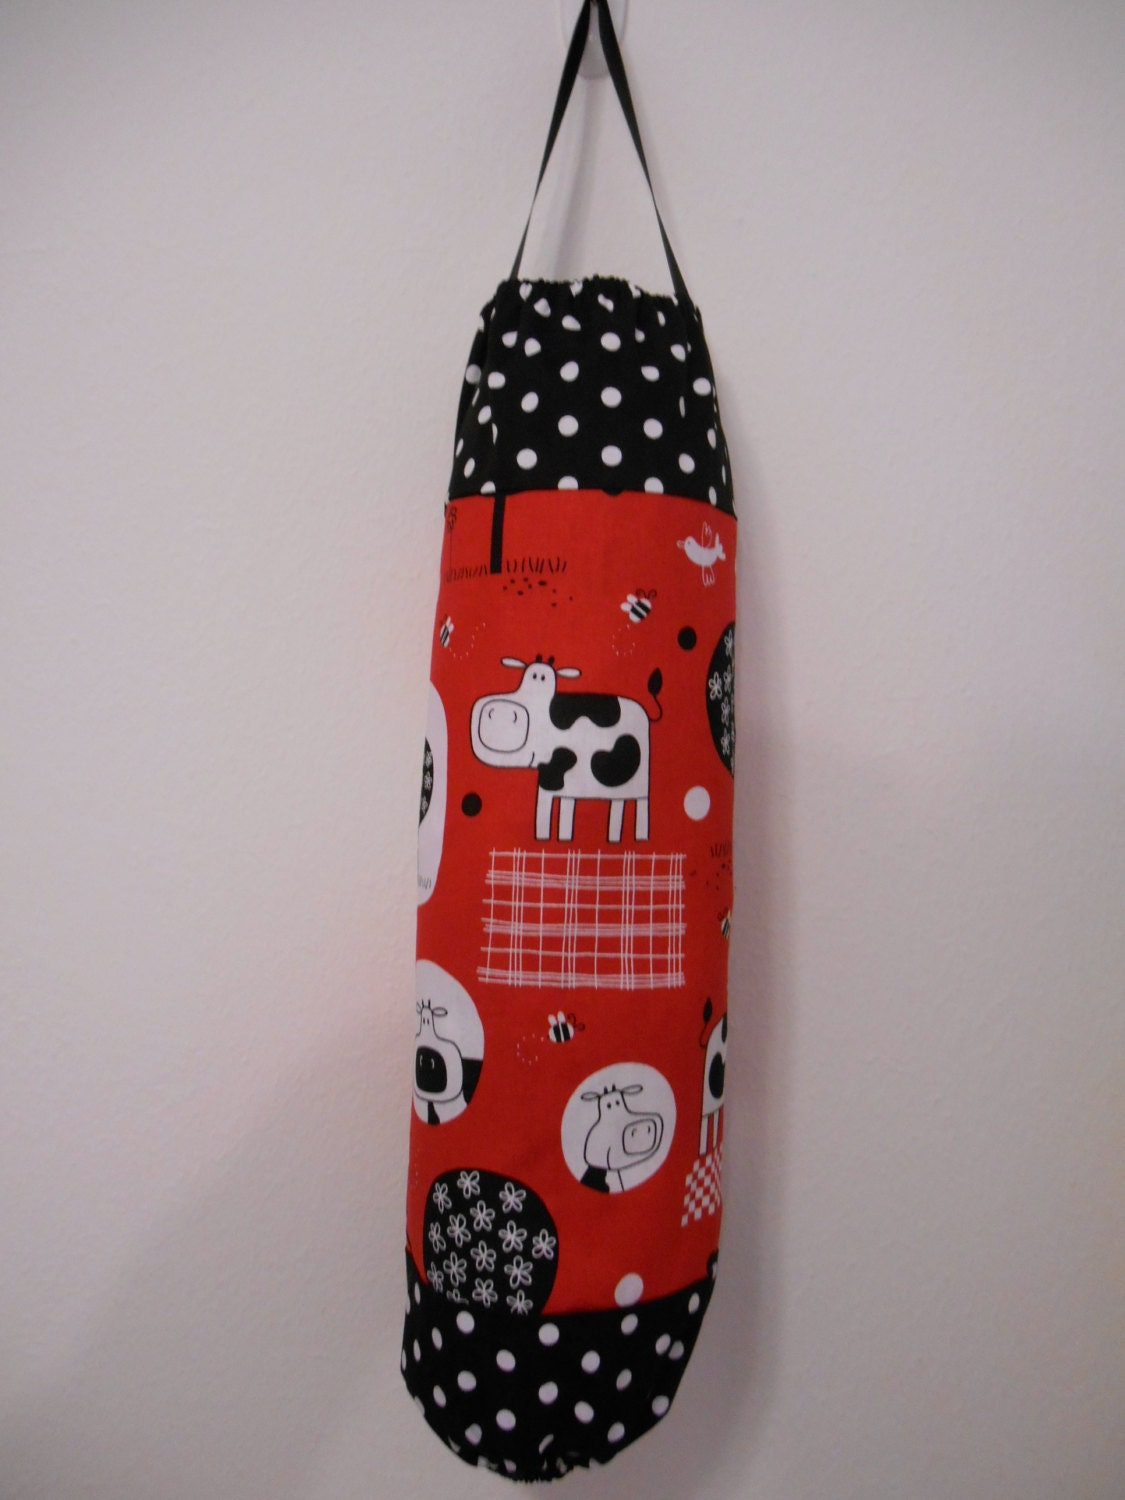 plastic bag holder grocery bag dispenser red and black farm. Black Bedroom Furniture Sets. Home Design Ideas